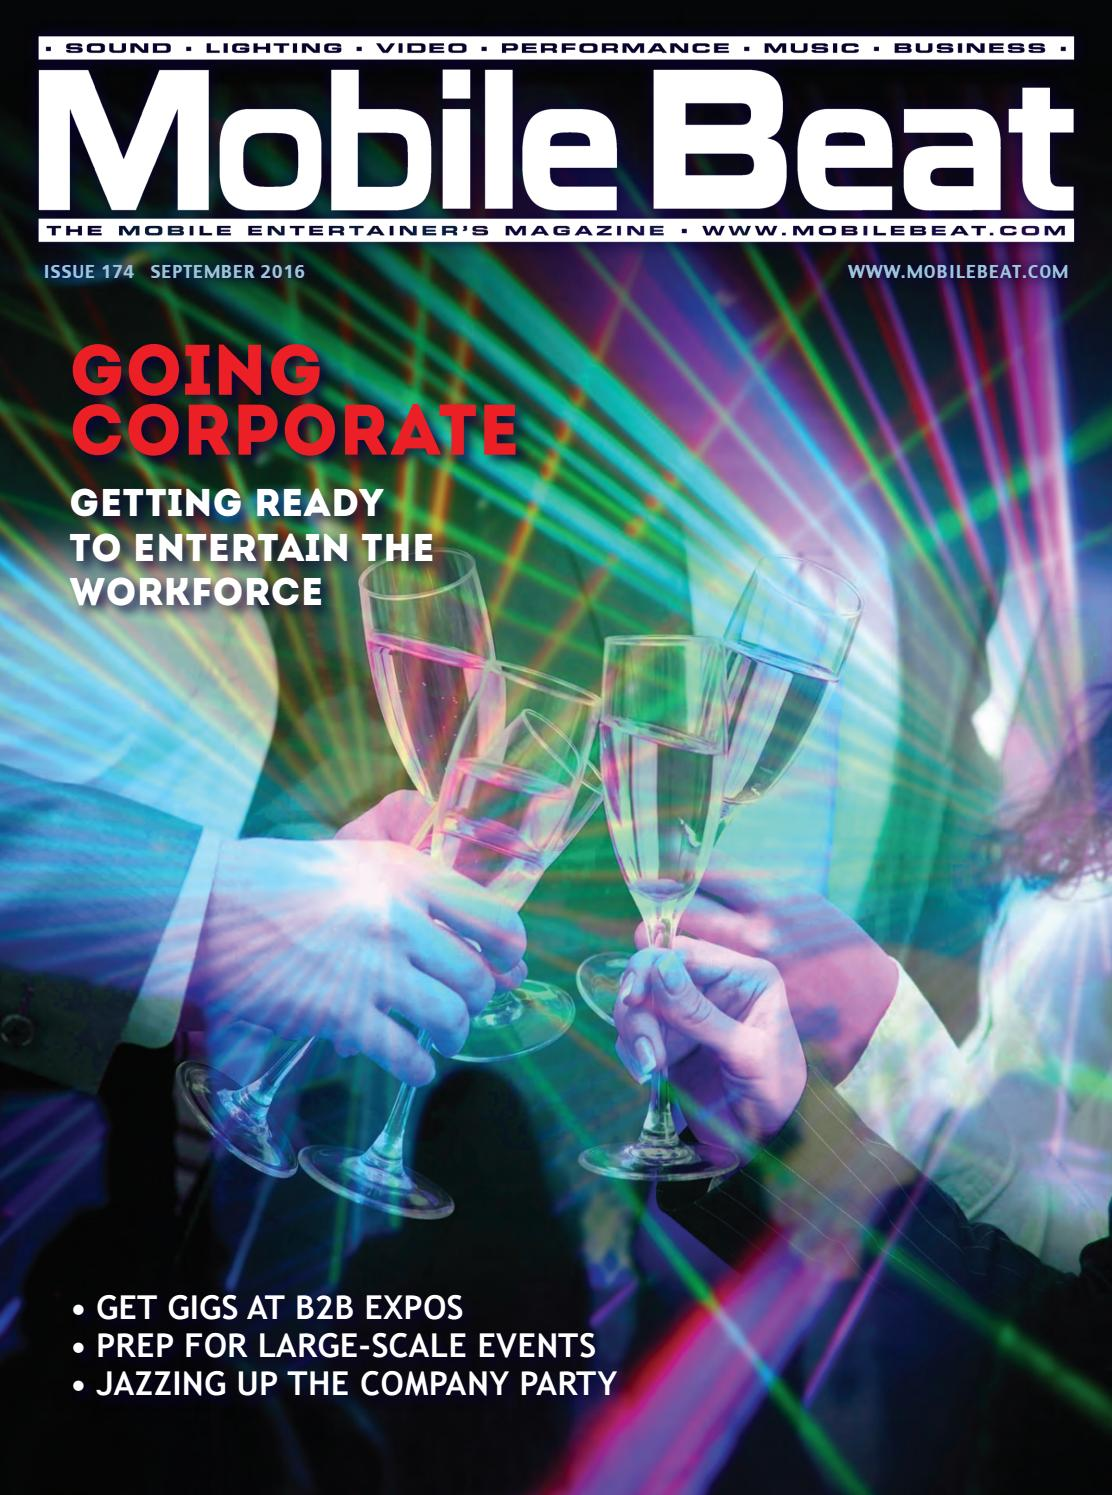 Issue 174 - September 2016 - Going Corporate by Mobile Beat